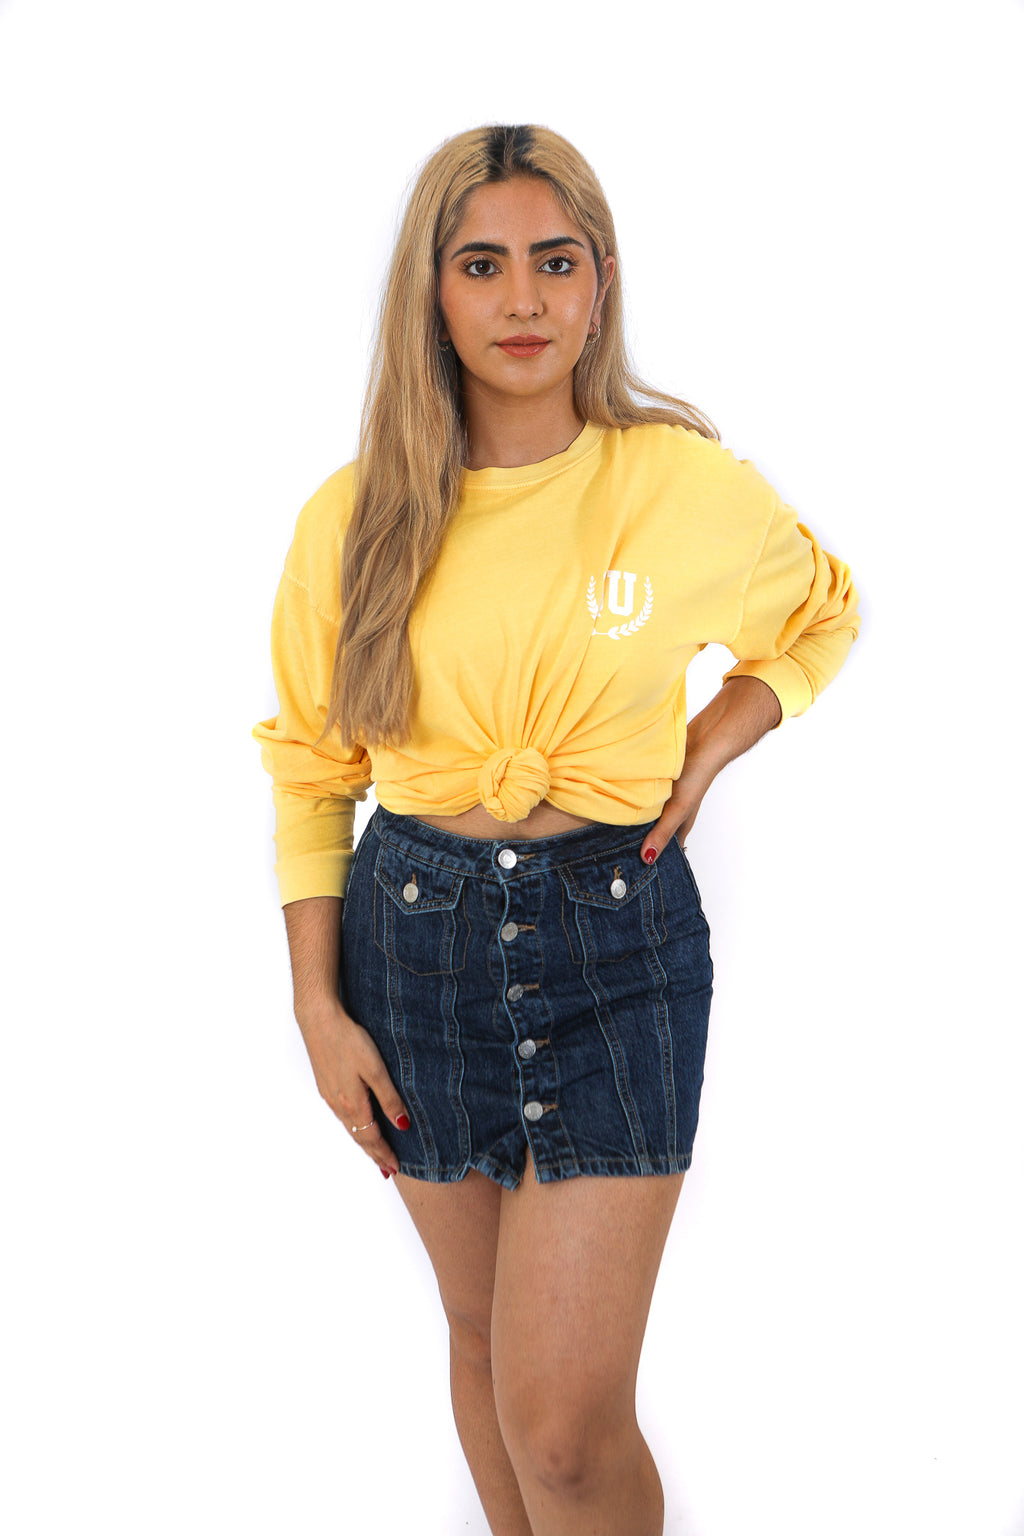 Yellow long sleeve with a white QU